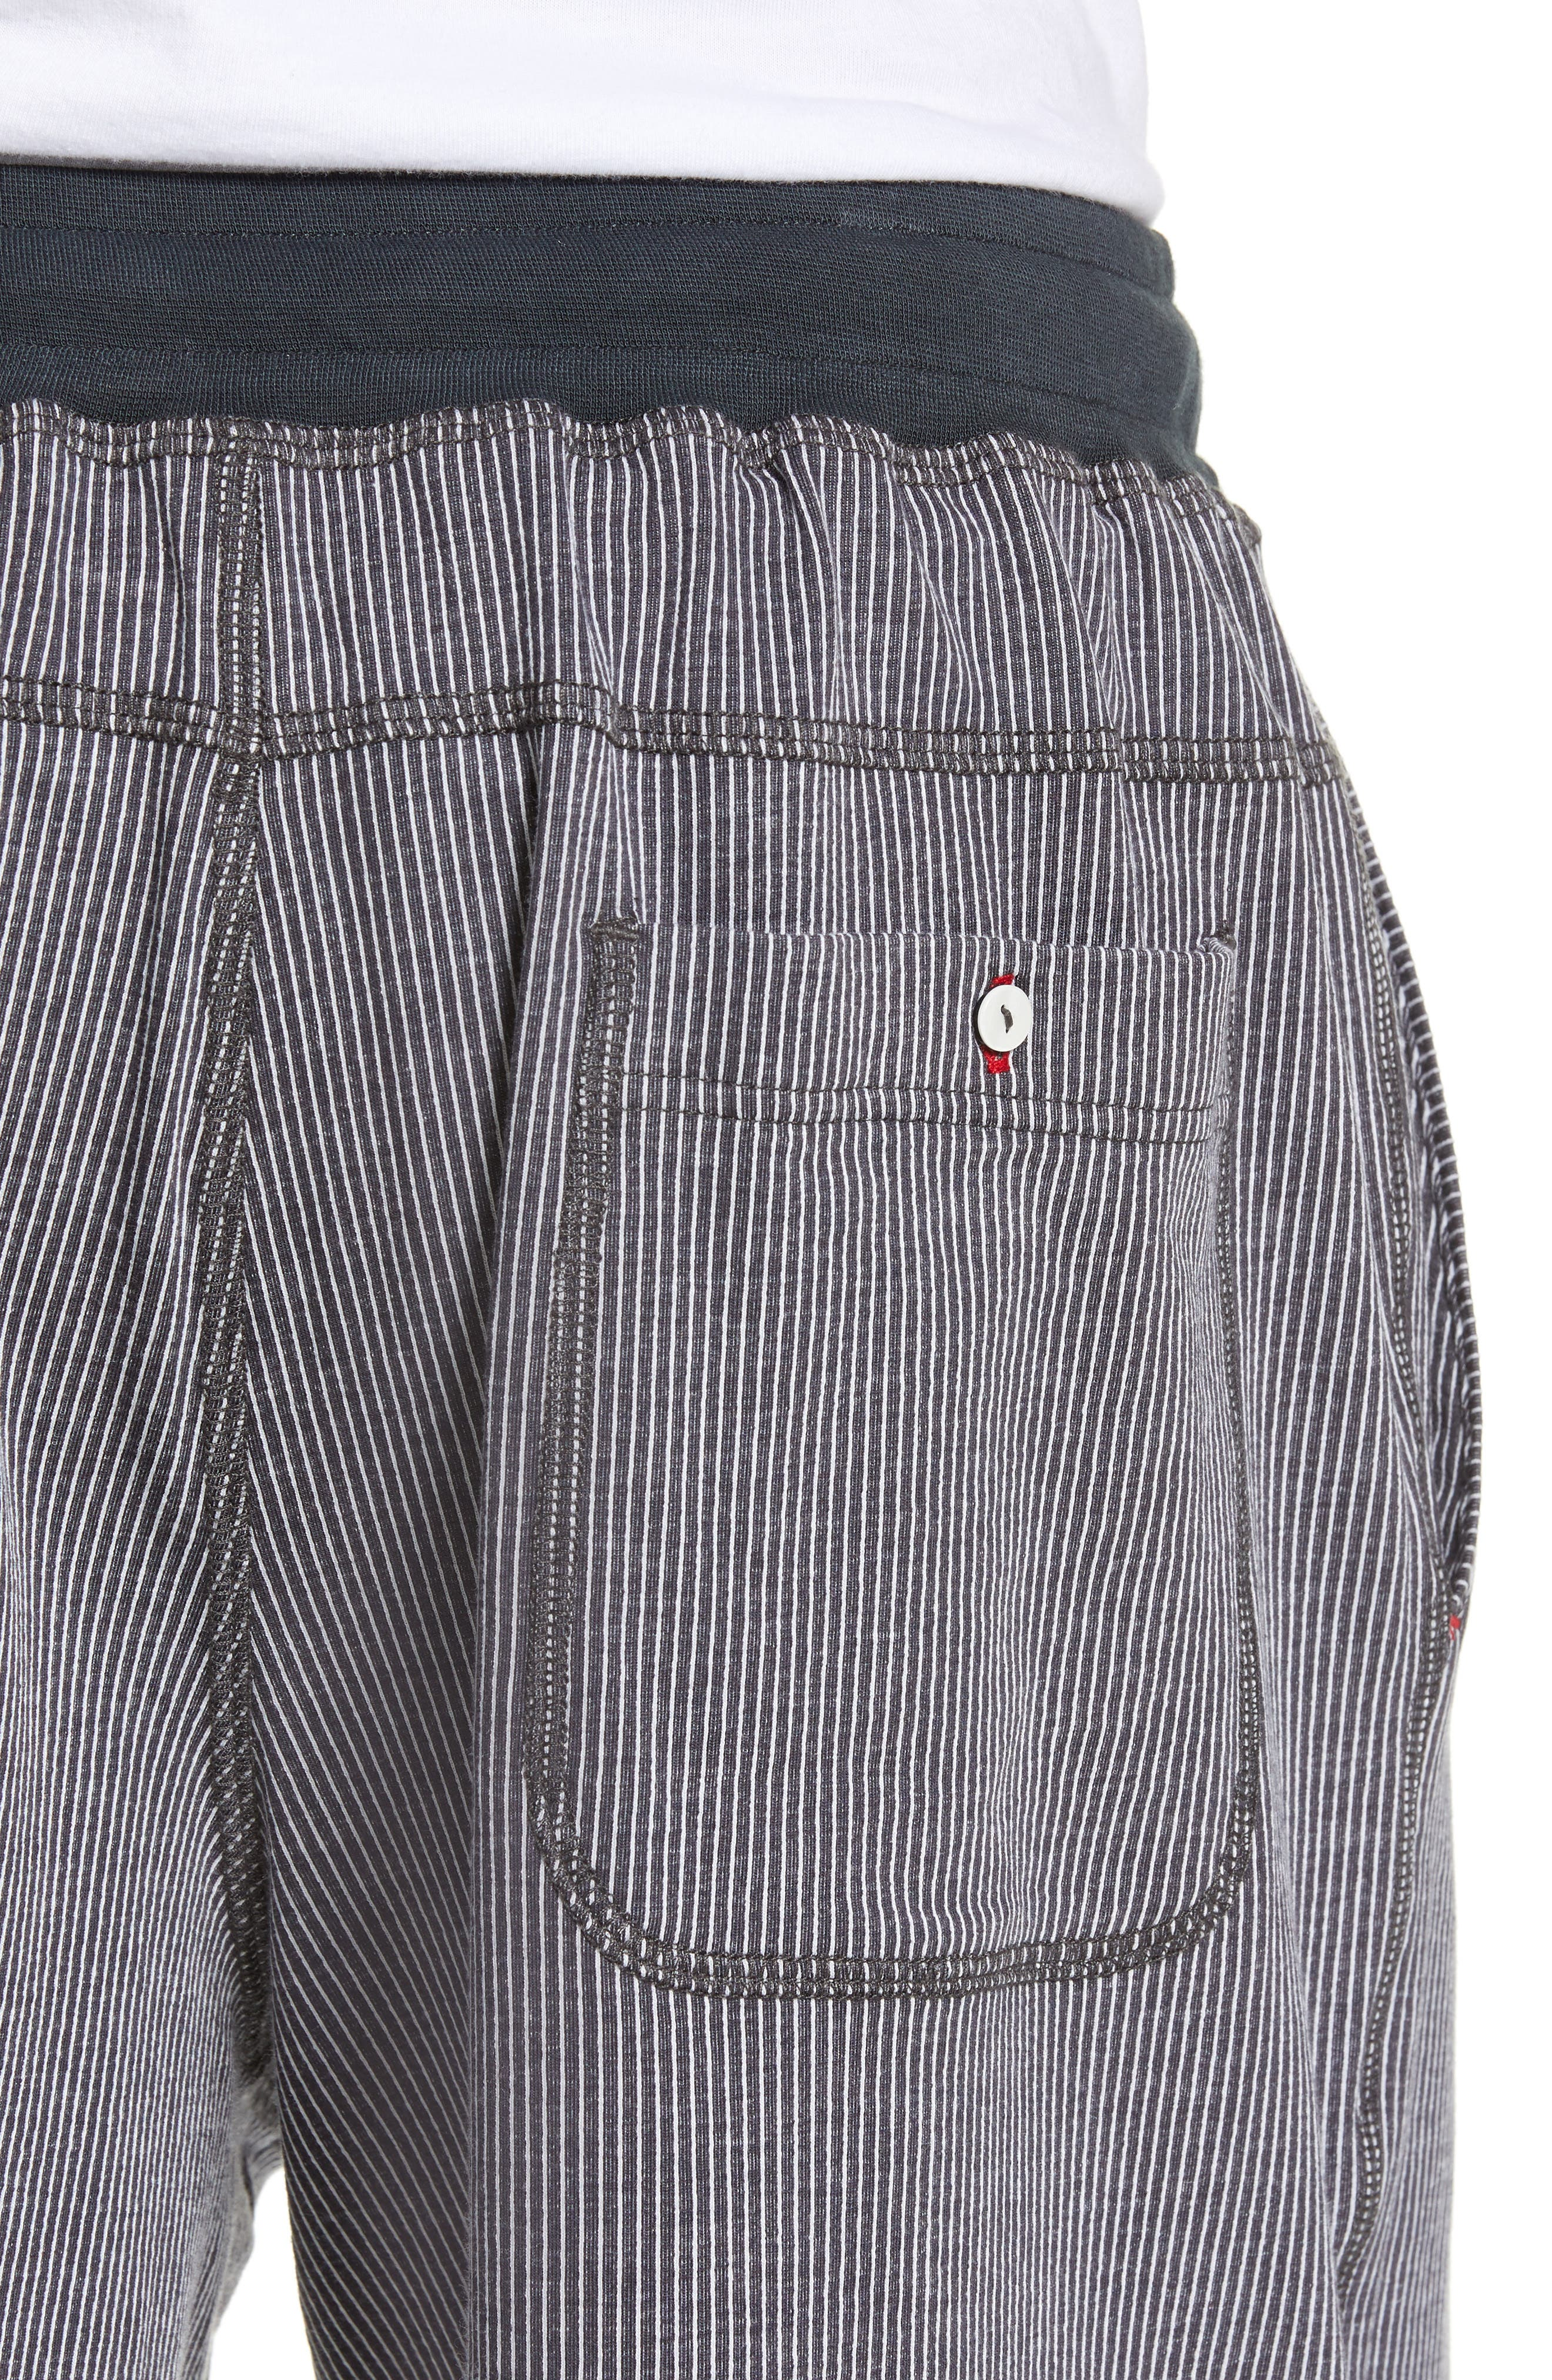 Pinstripe Shorts,                             Alternate thumbnail 4, color,                             CHARCOAL